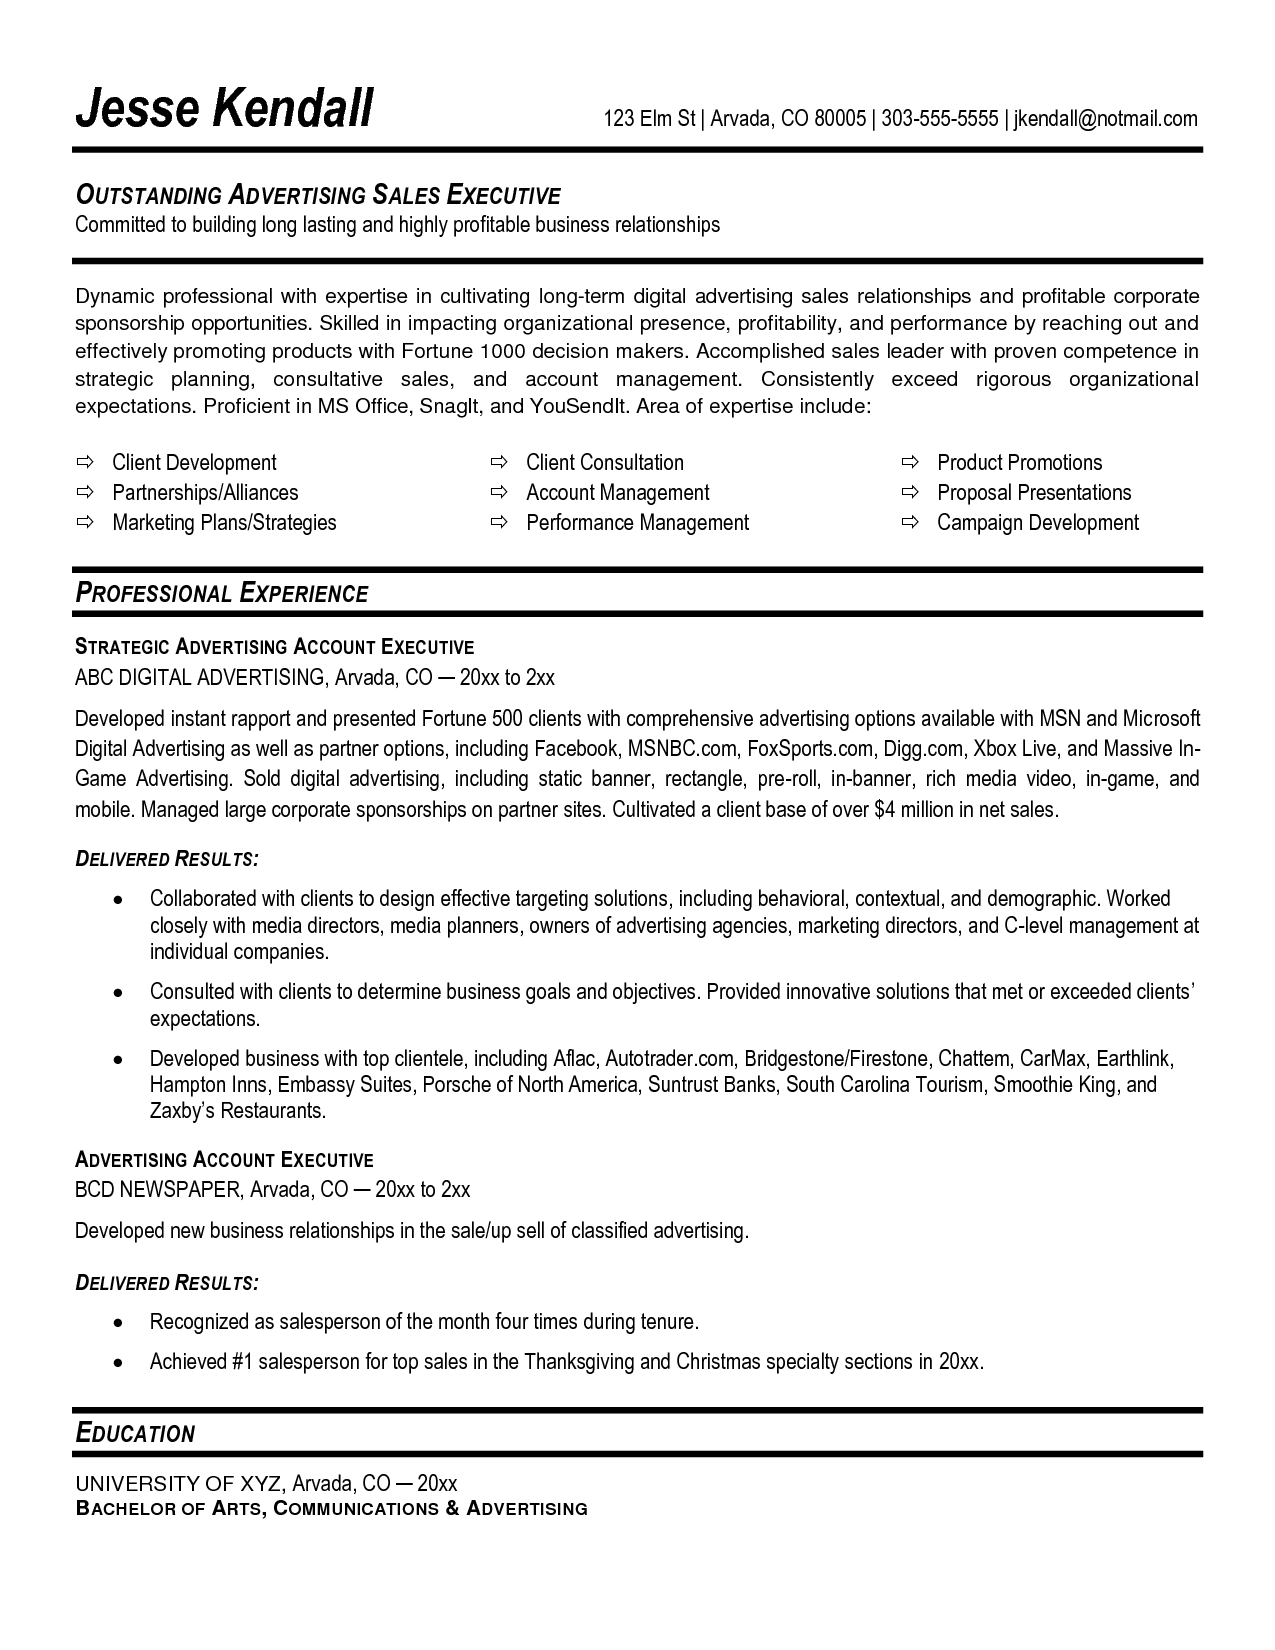 Bank Sales Executive Resume Excellent Resume Account Management Google Search Job